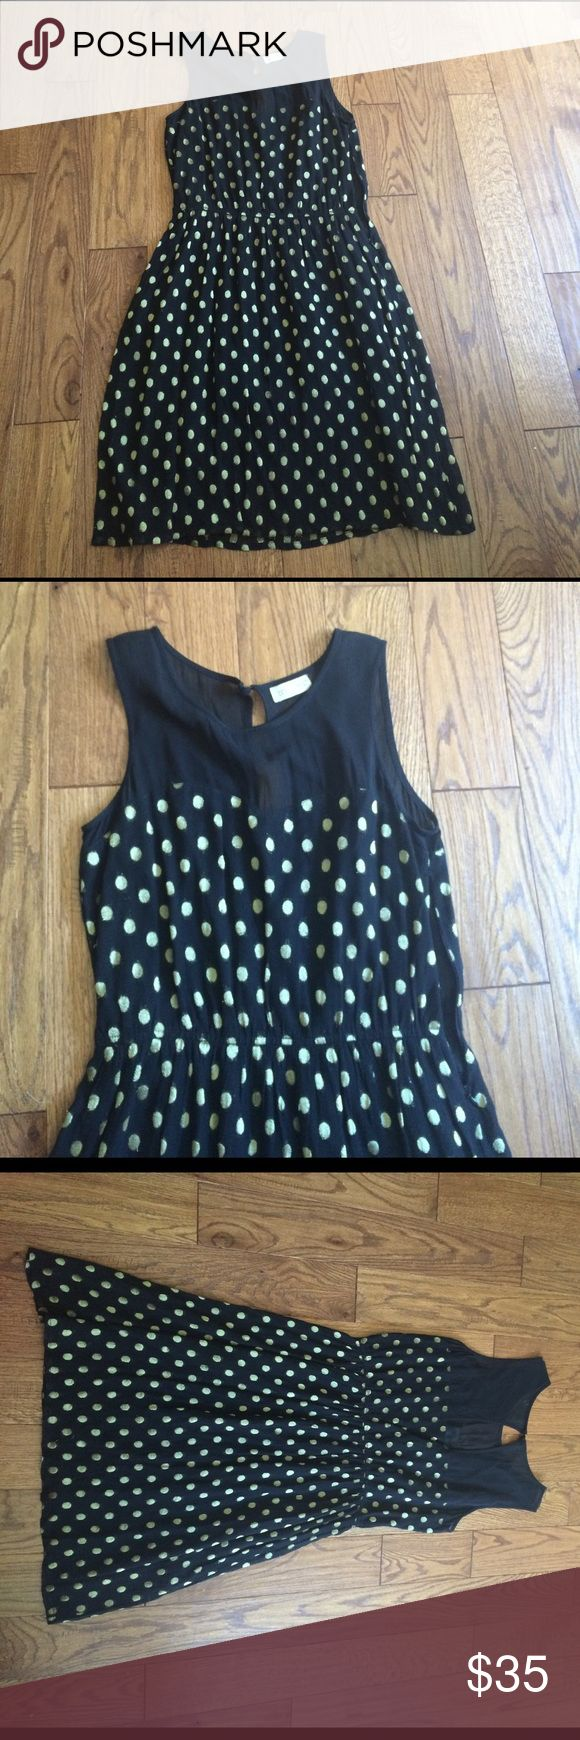 Anthropologie sz medium gold and black dress Gorgeous sheer neckline with open back fully lined not Anthropologie but purchased at sample sale in London label says love label. Fits like a size 6-8 perfect condition worn twice Anthropologie Dresses Midi